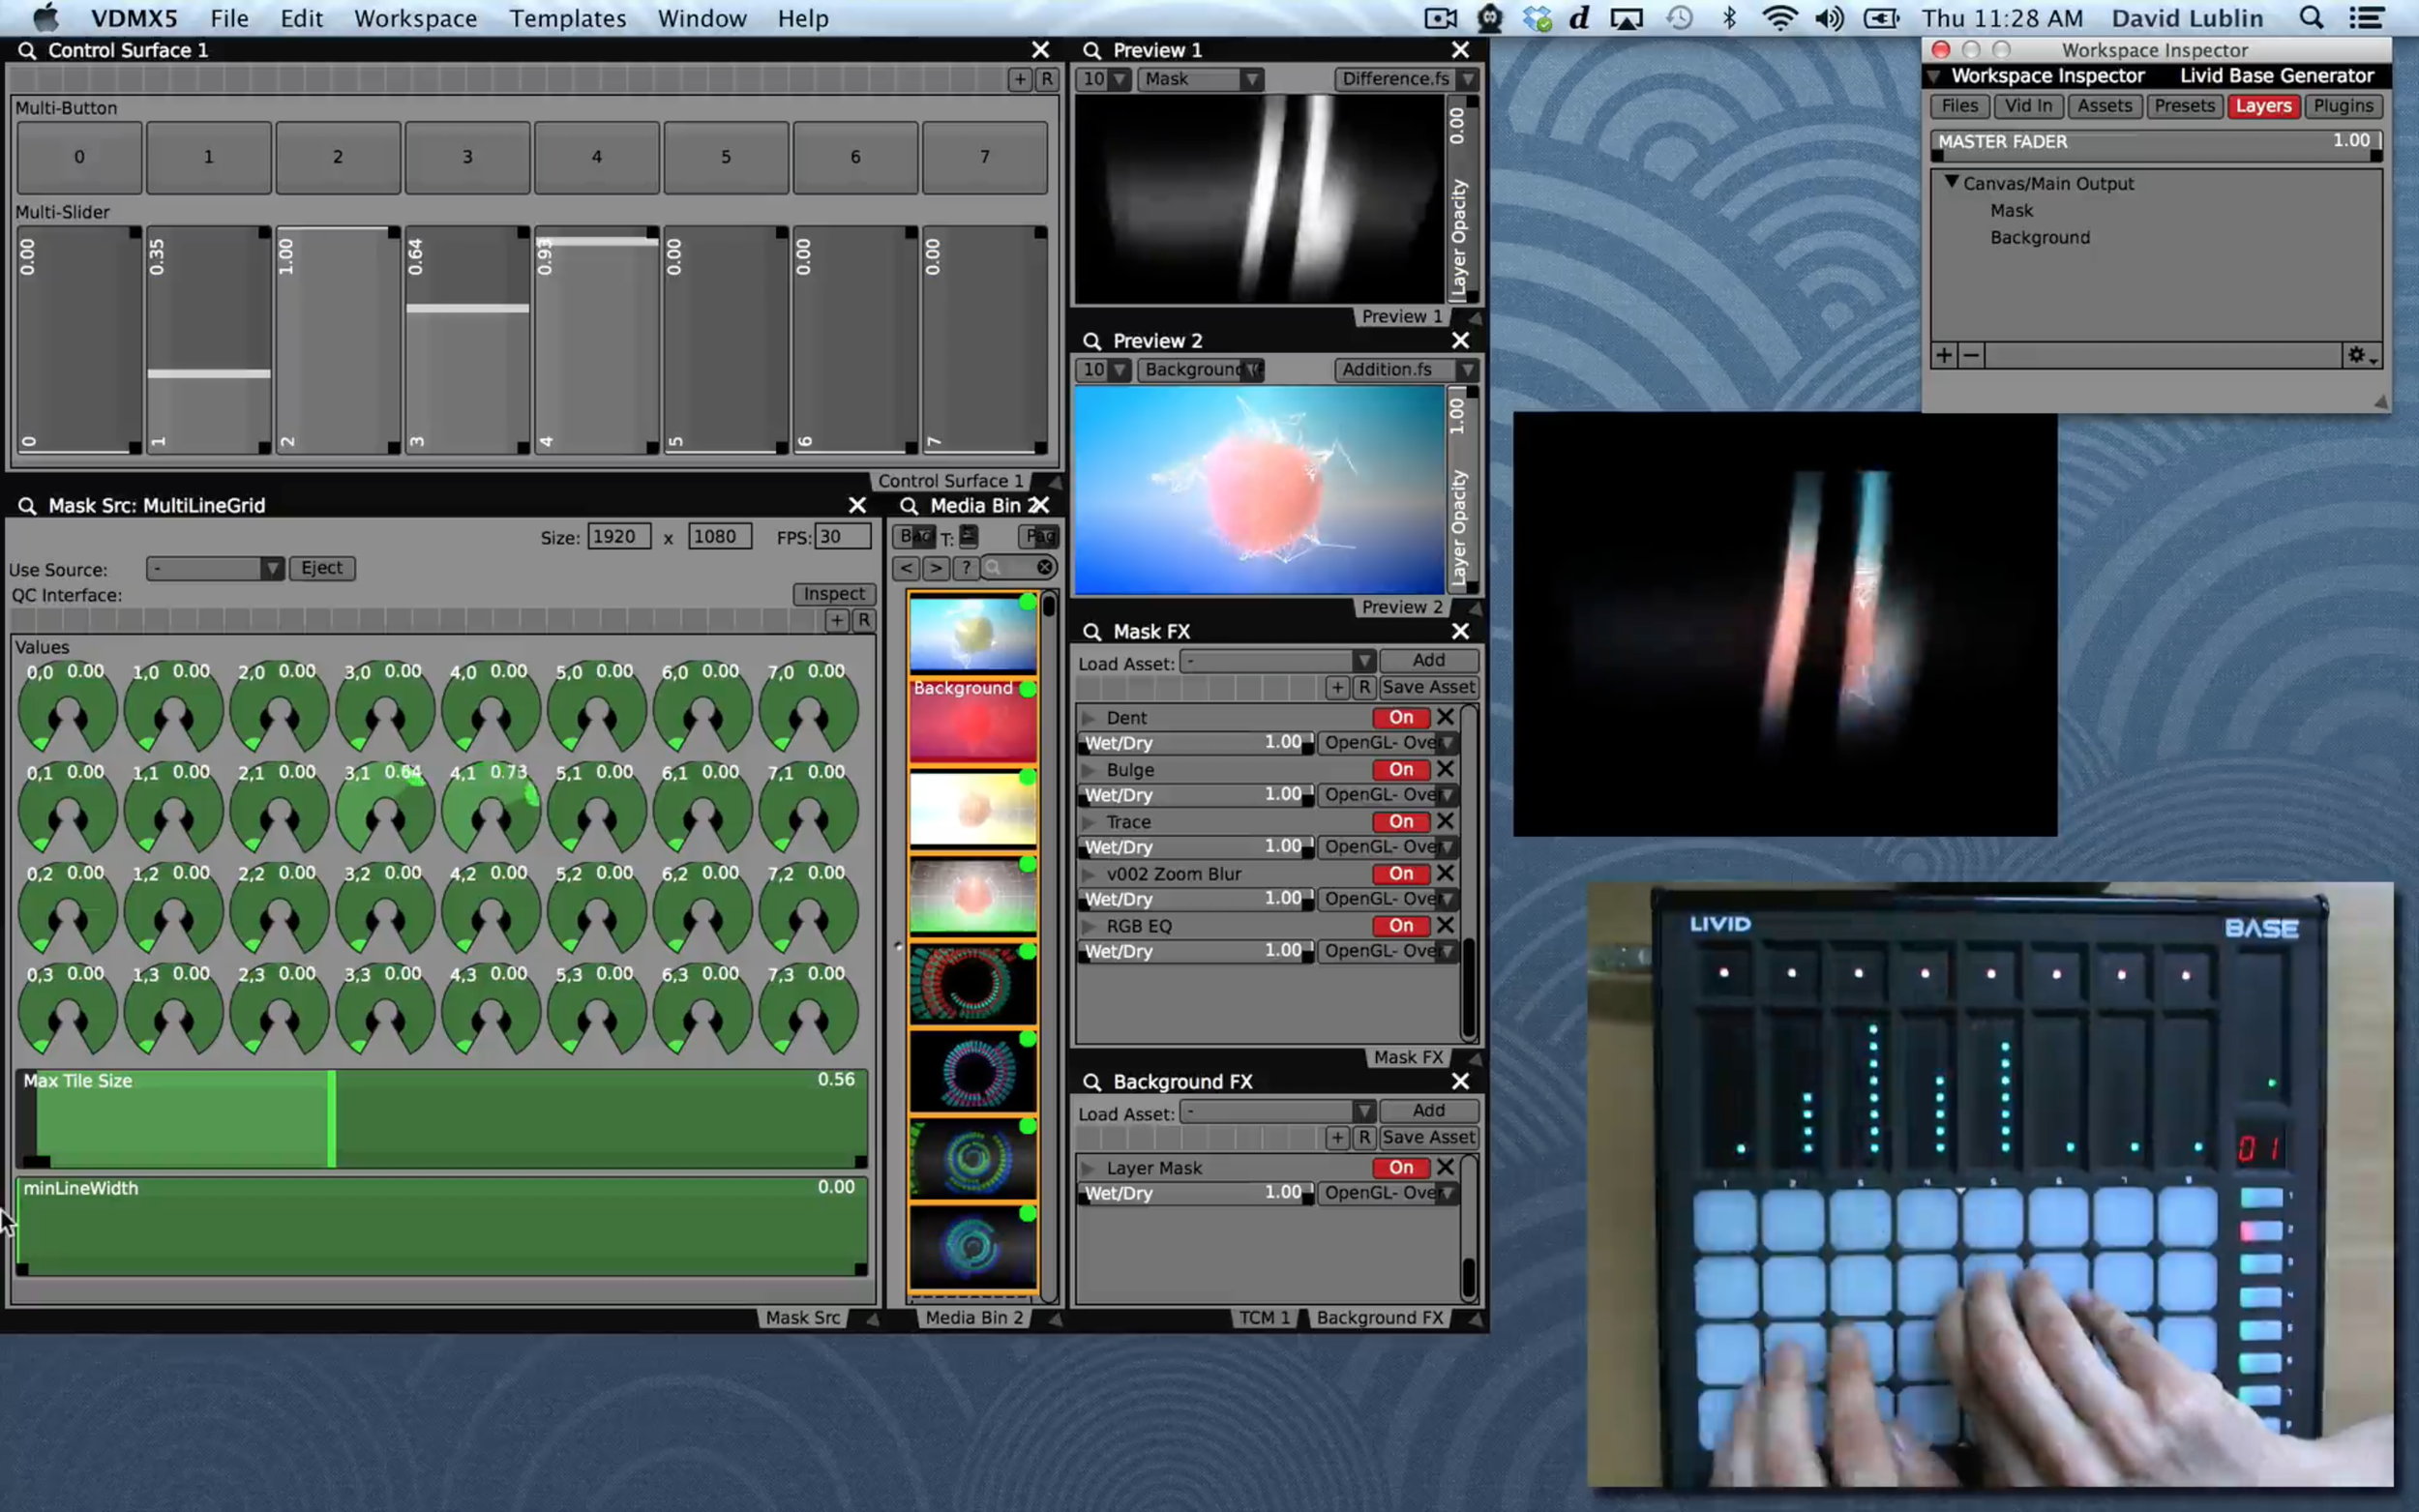 A video synthesizer in VDMX mapped to the Livid Base MIDI controller.